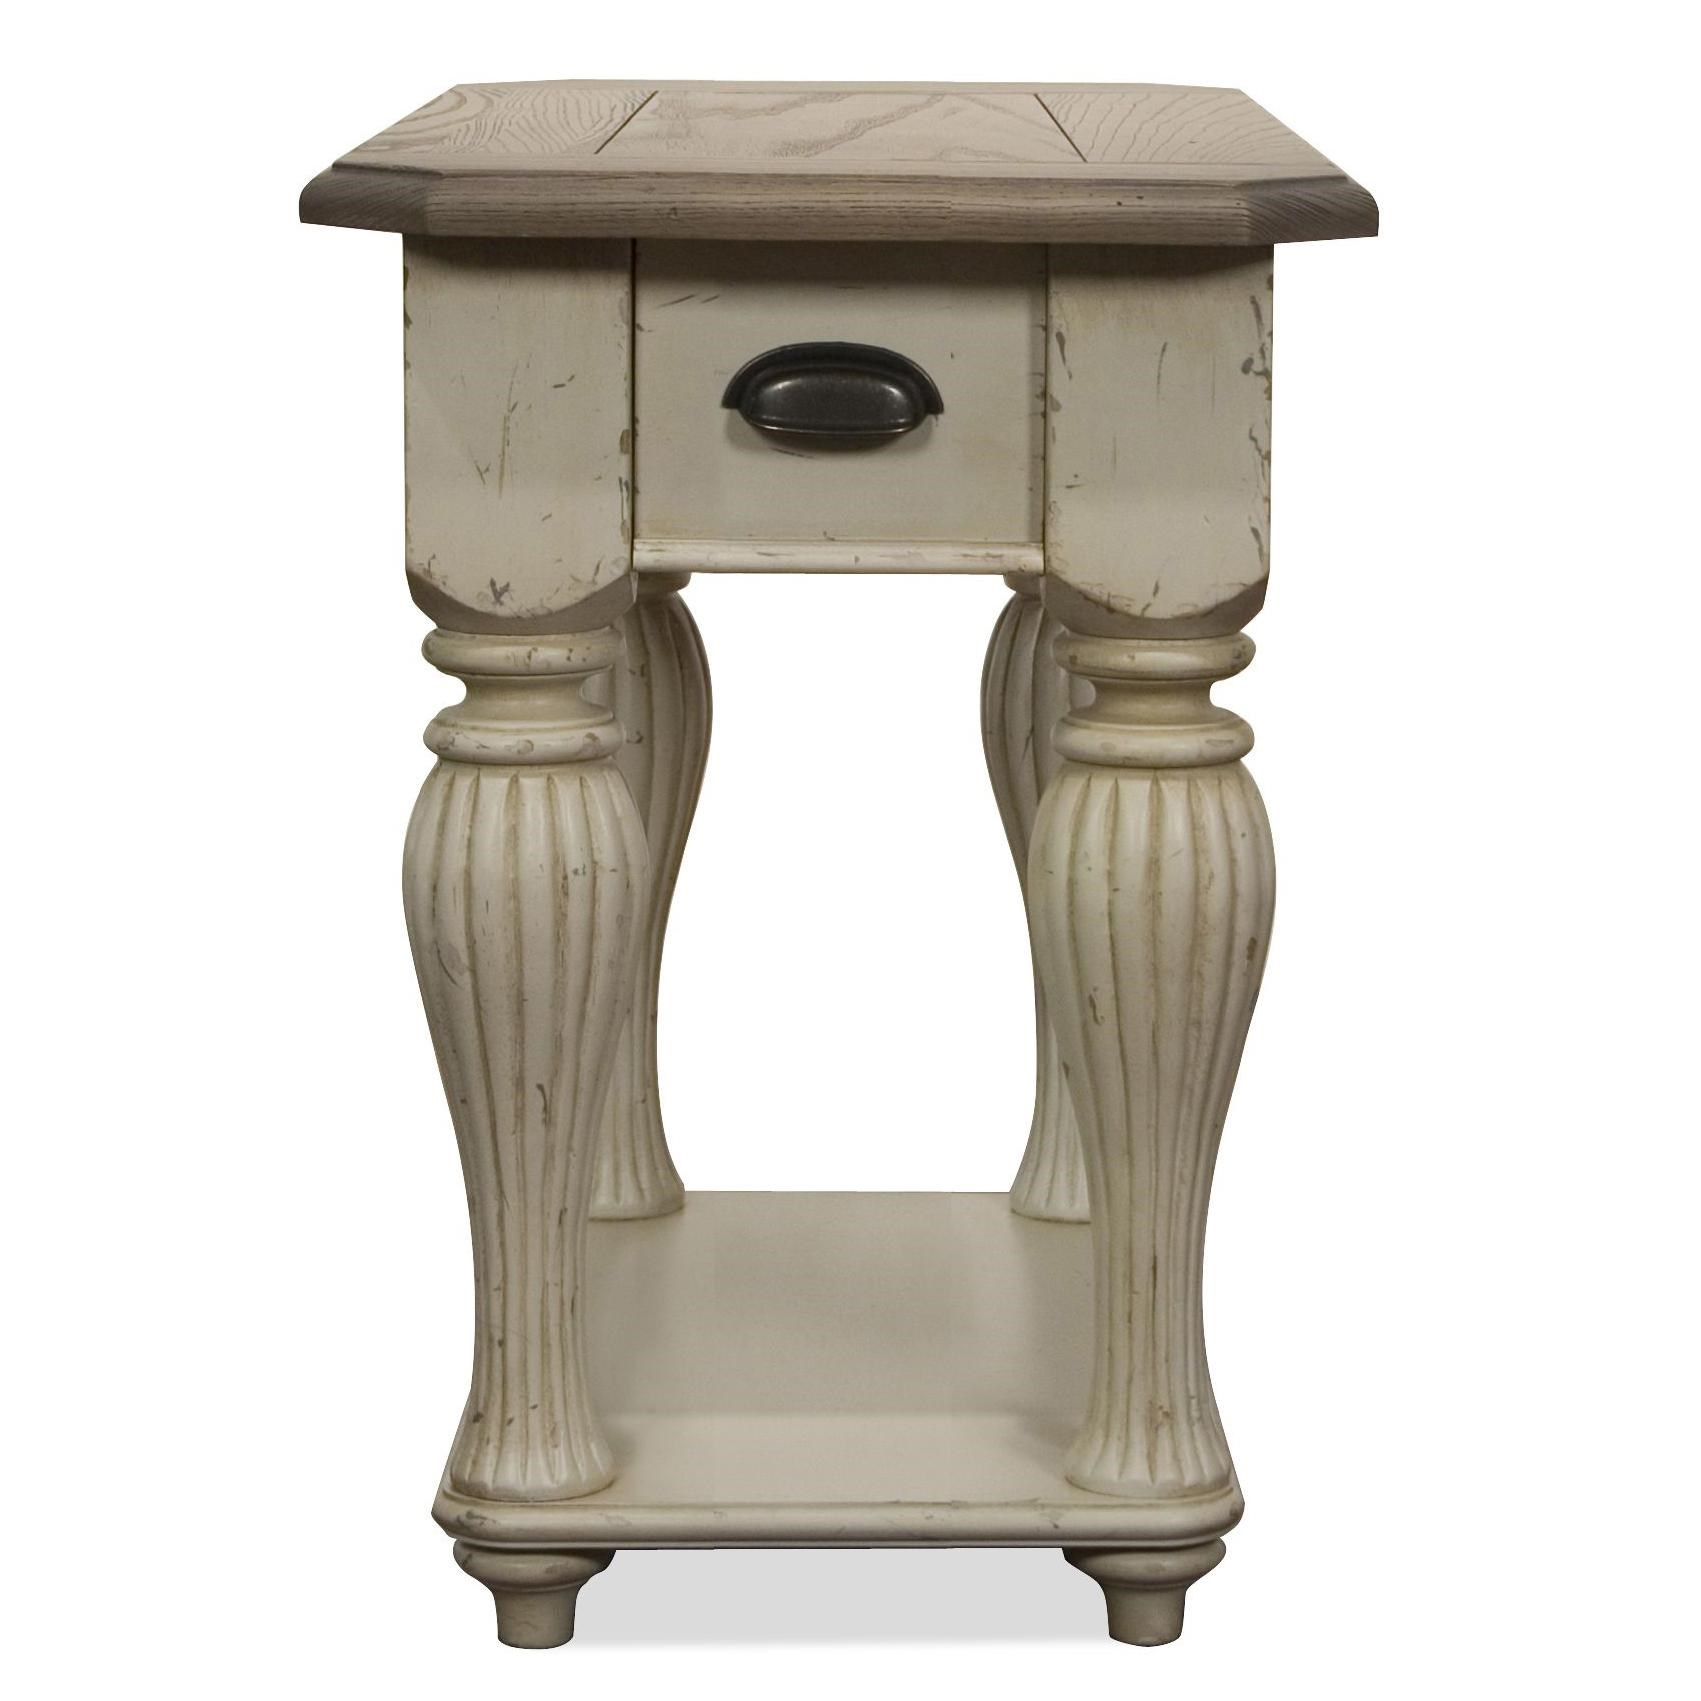 Coventry Two Tone Chairside Table With Fixed Bottom Shelf By Riverside  Furniture. Coventry Two Tone Collection